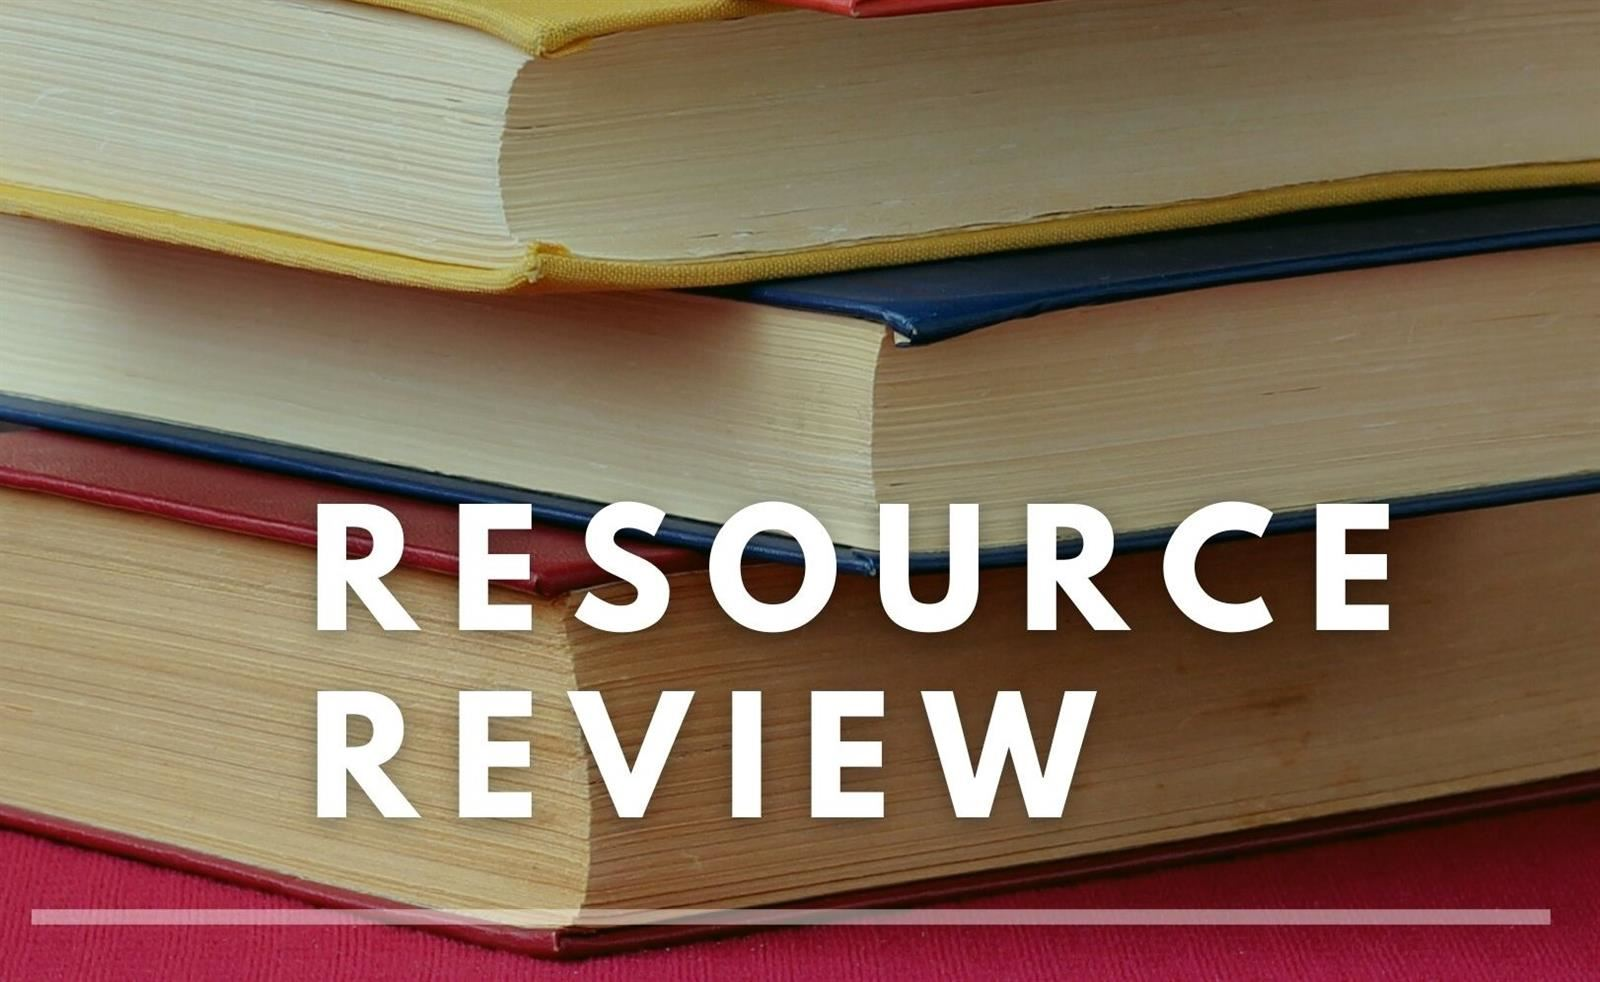 Resource Review